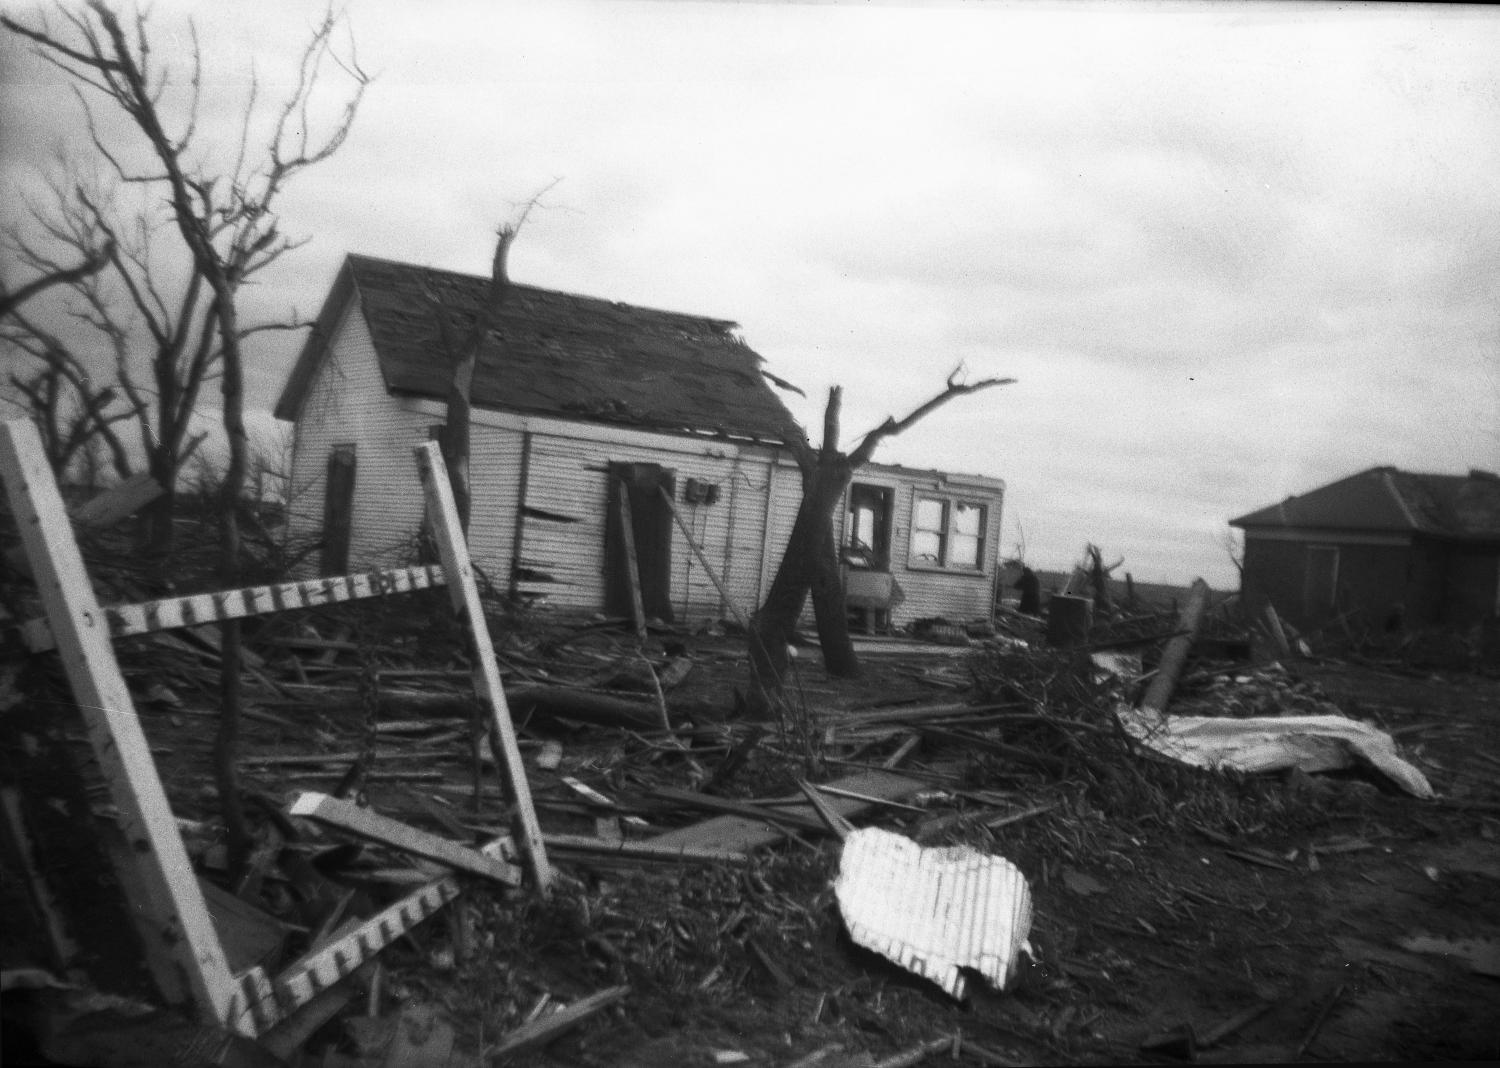 Damaged House After Tornado                                                                                                      [Sequence #]: 1 of 1